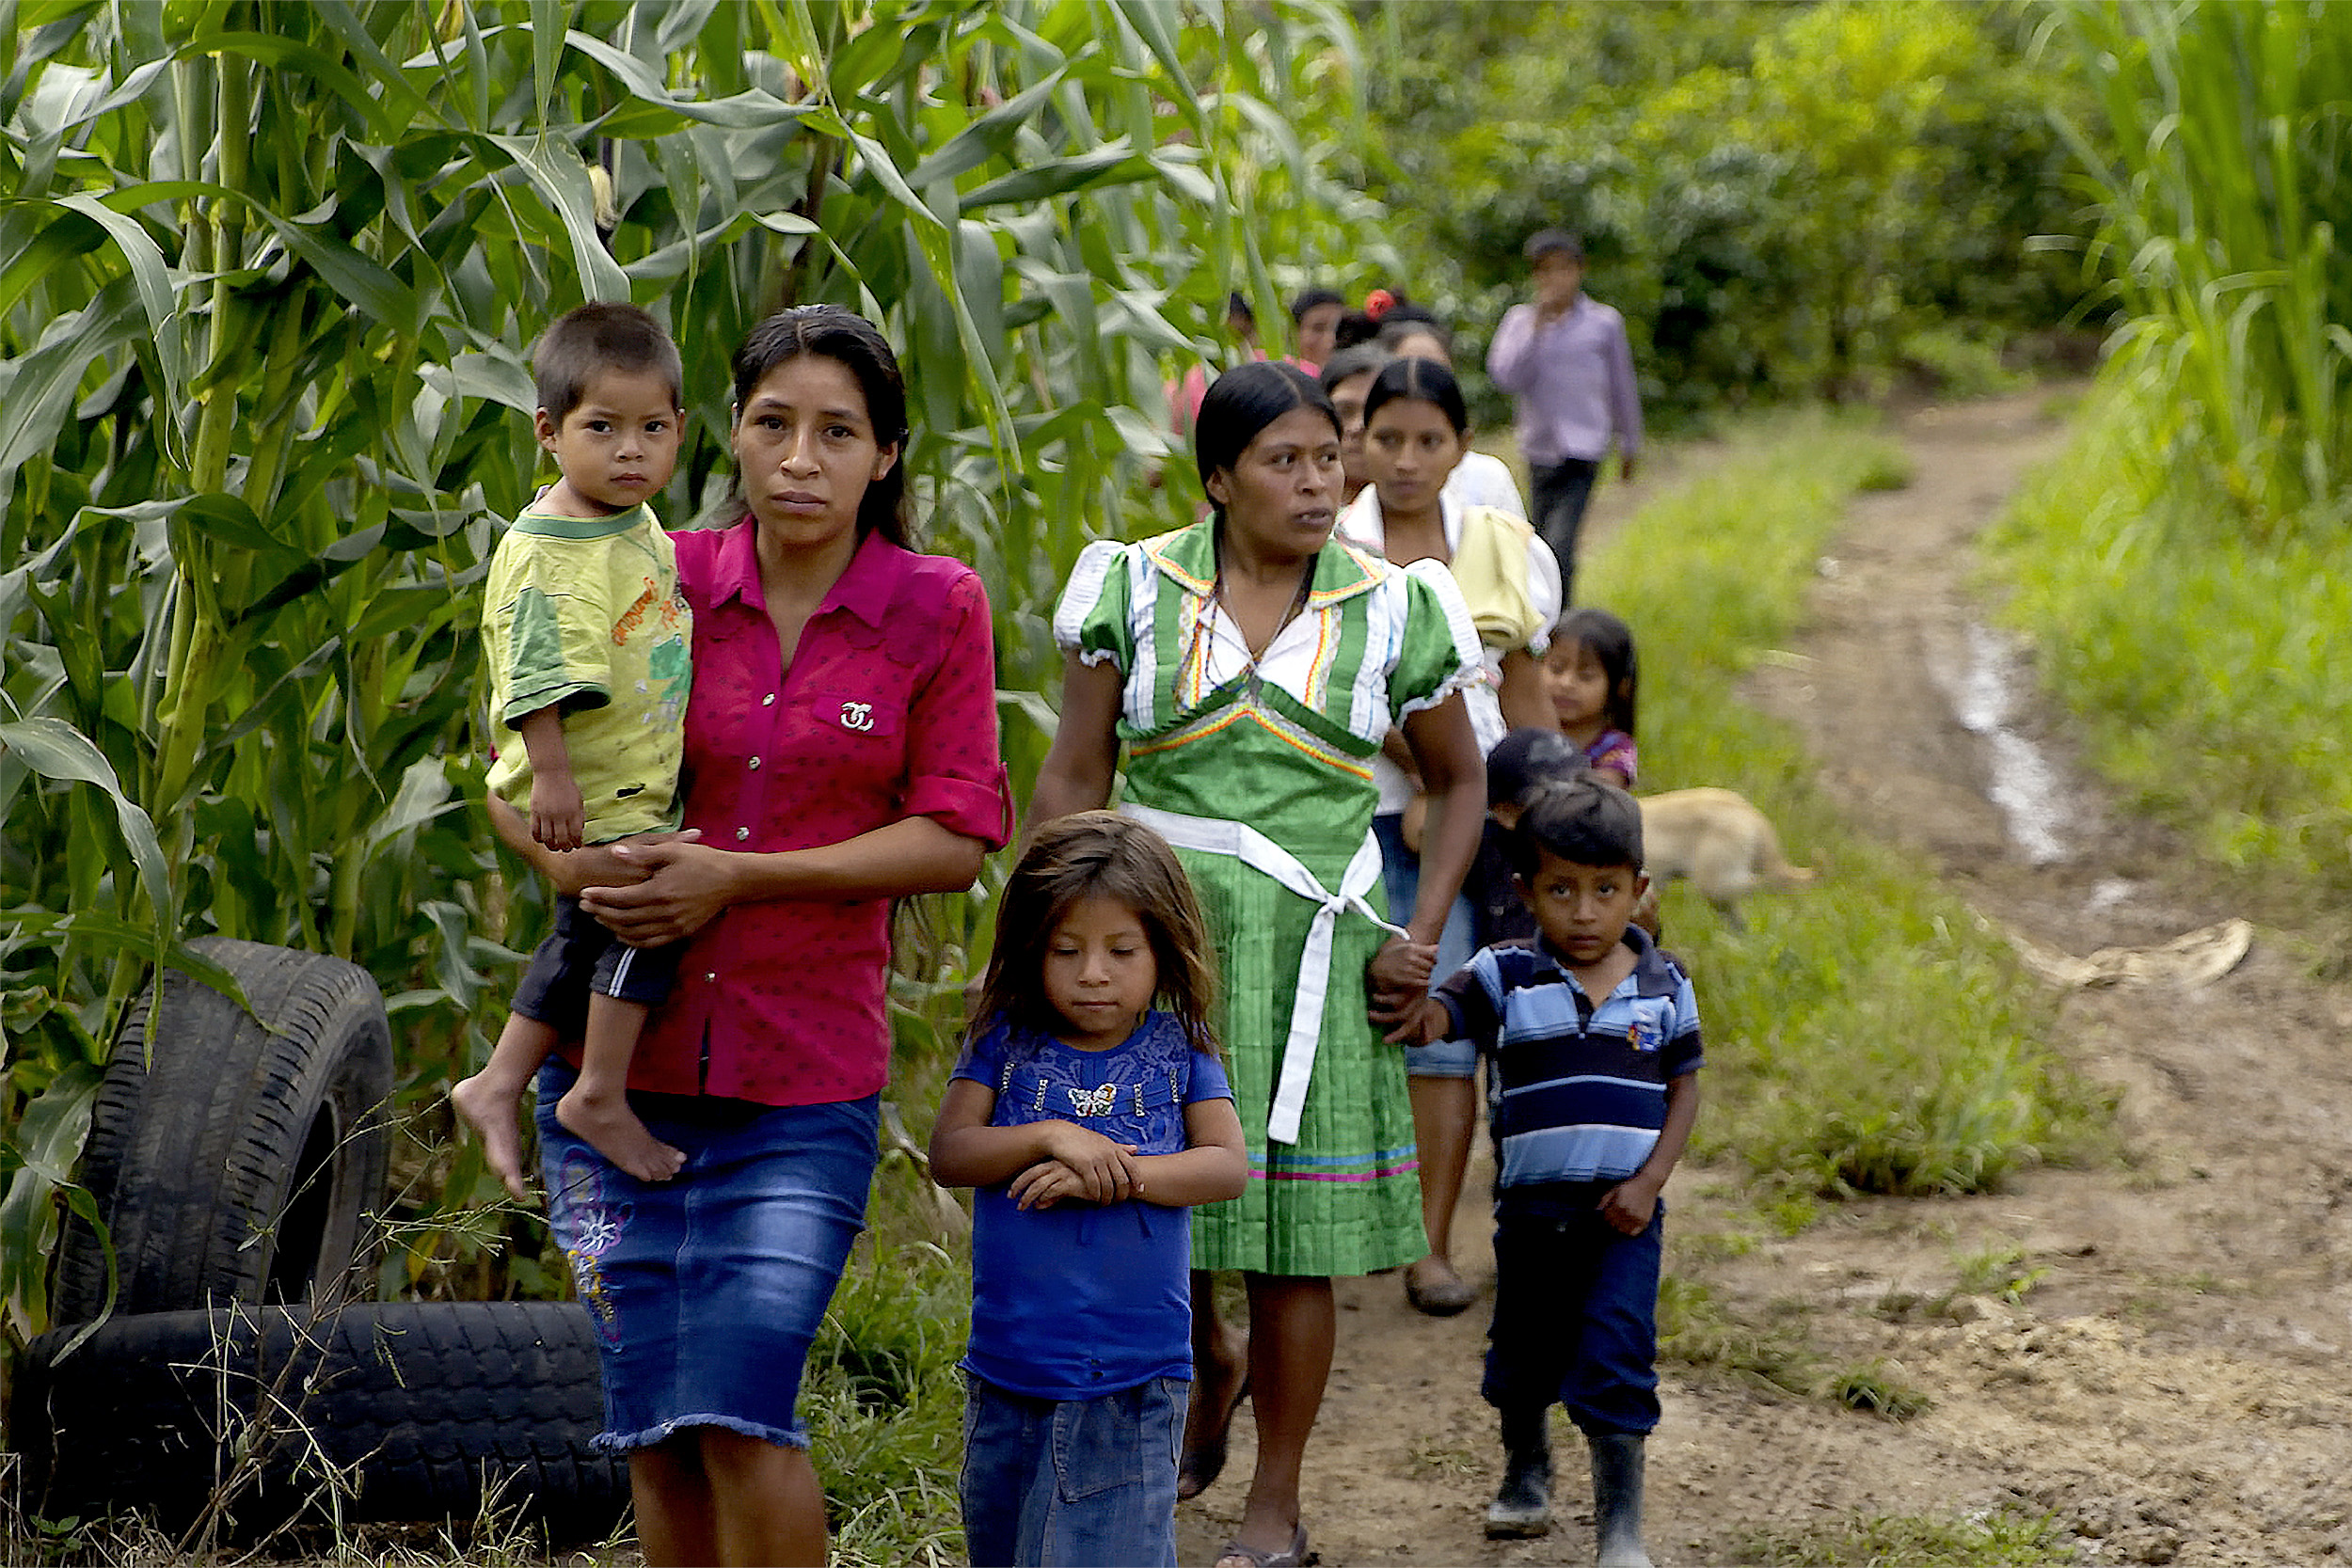 Climate change may trigger migrations around the world. They've already started in Guatemala.